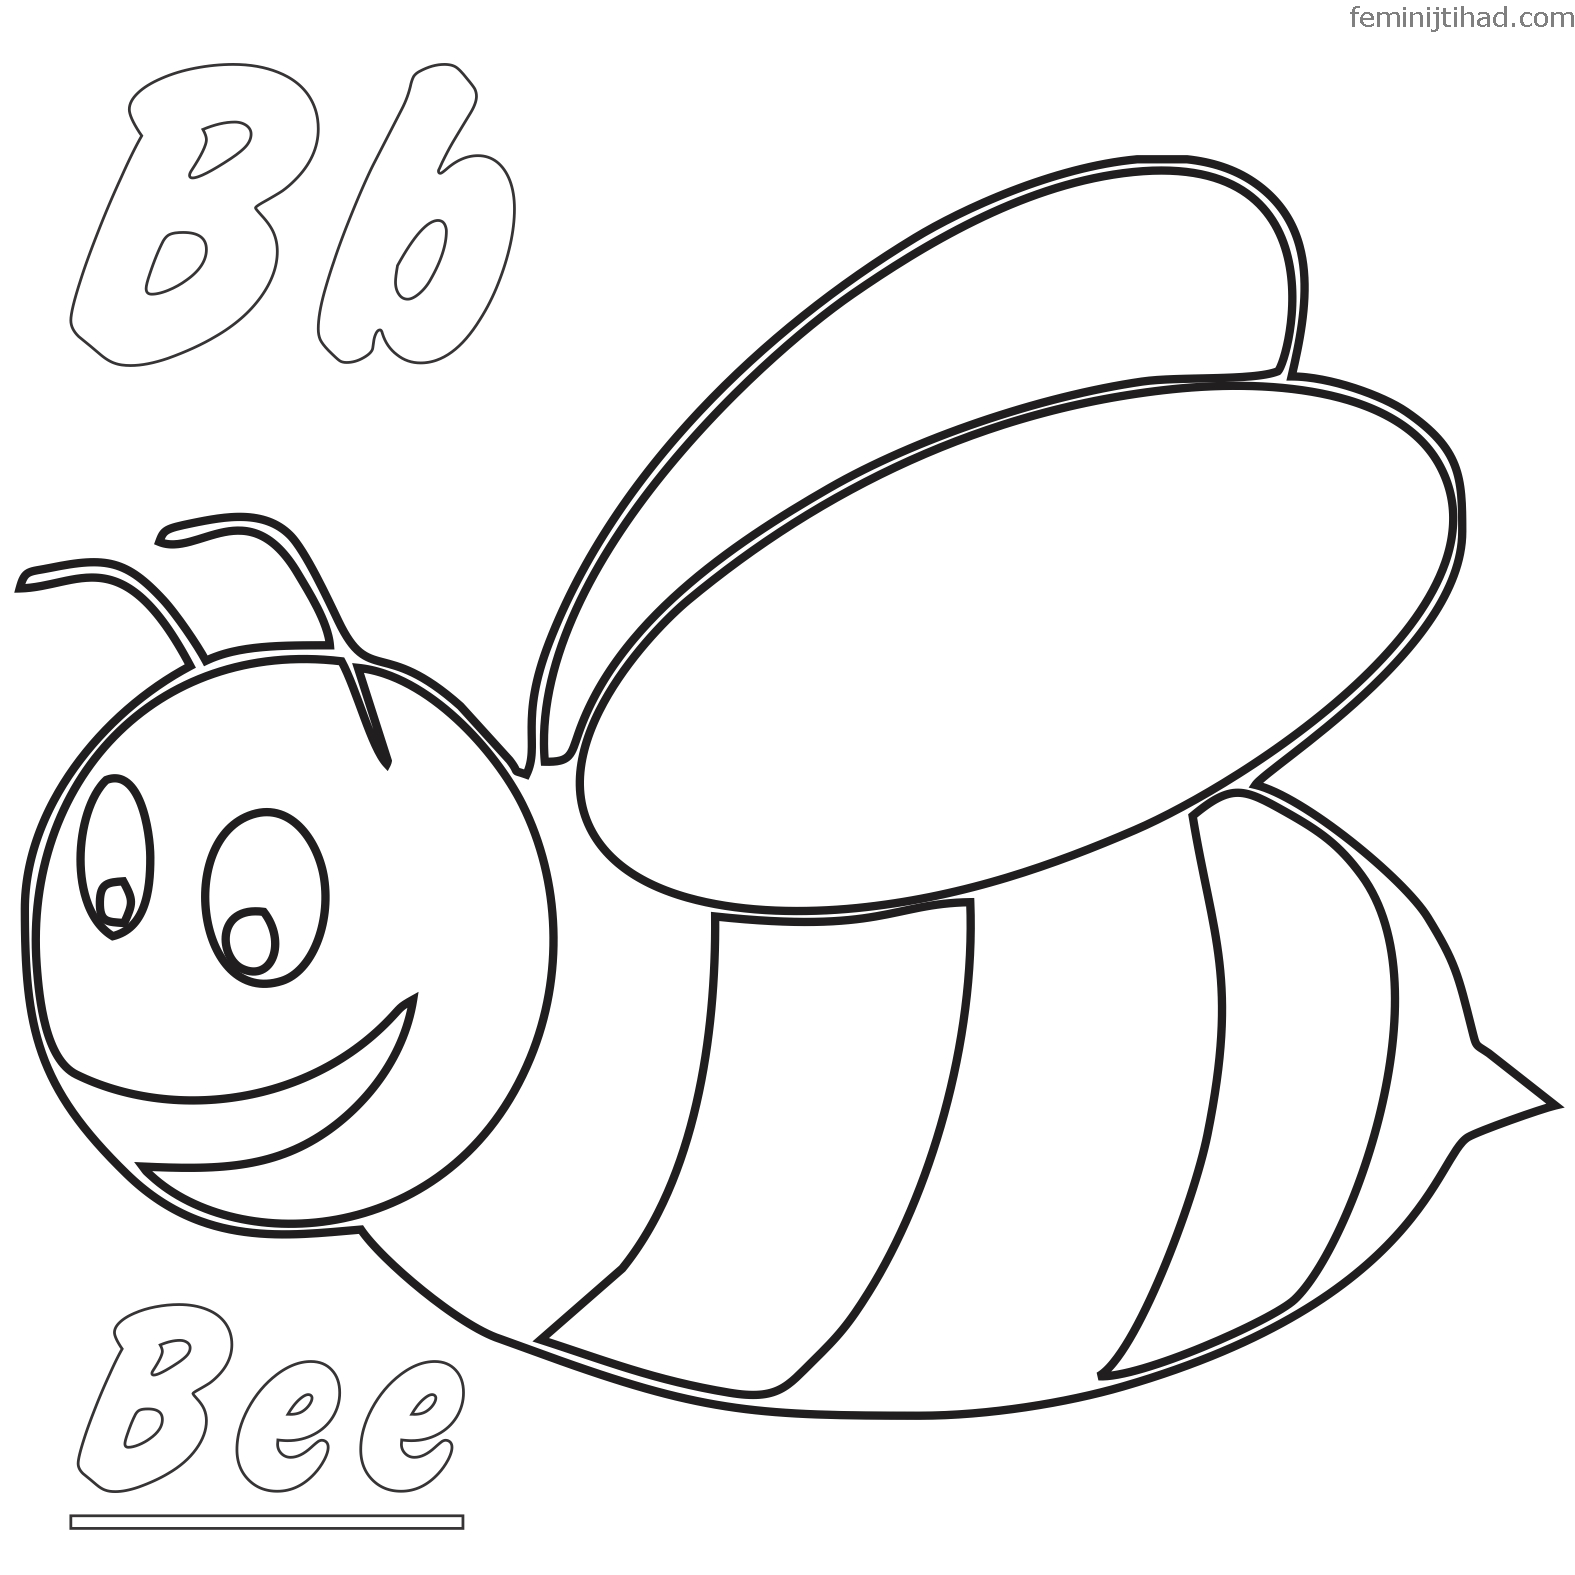 Bumblebee Coloring Pages Collection Free Coloring Sheets Bee Coloring Pages Bee Tags Free Mosaic Patterns